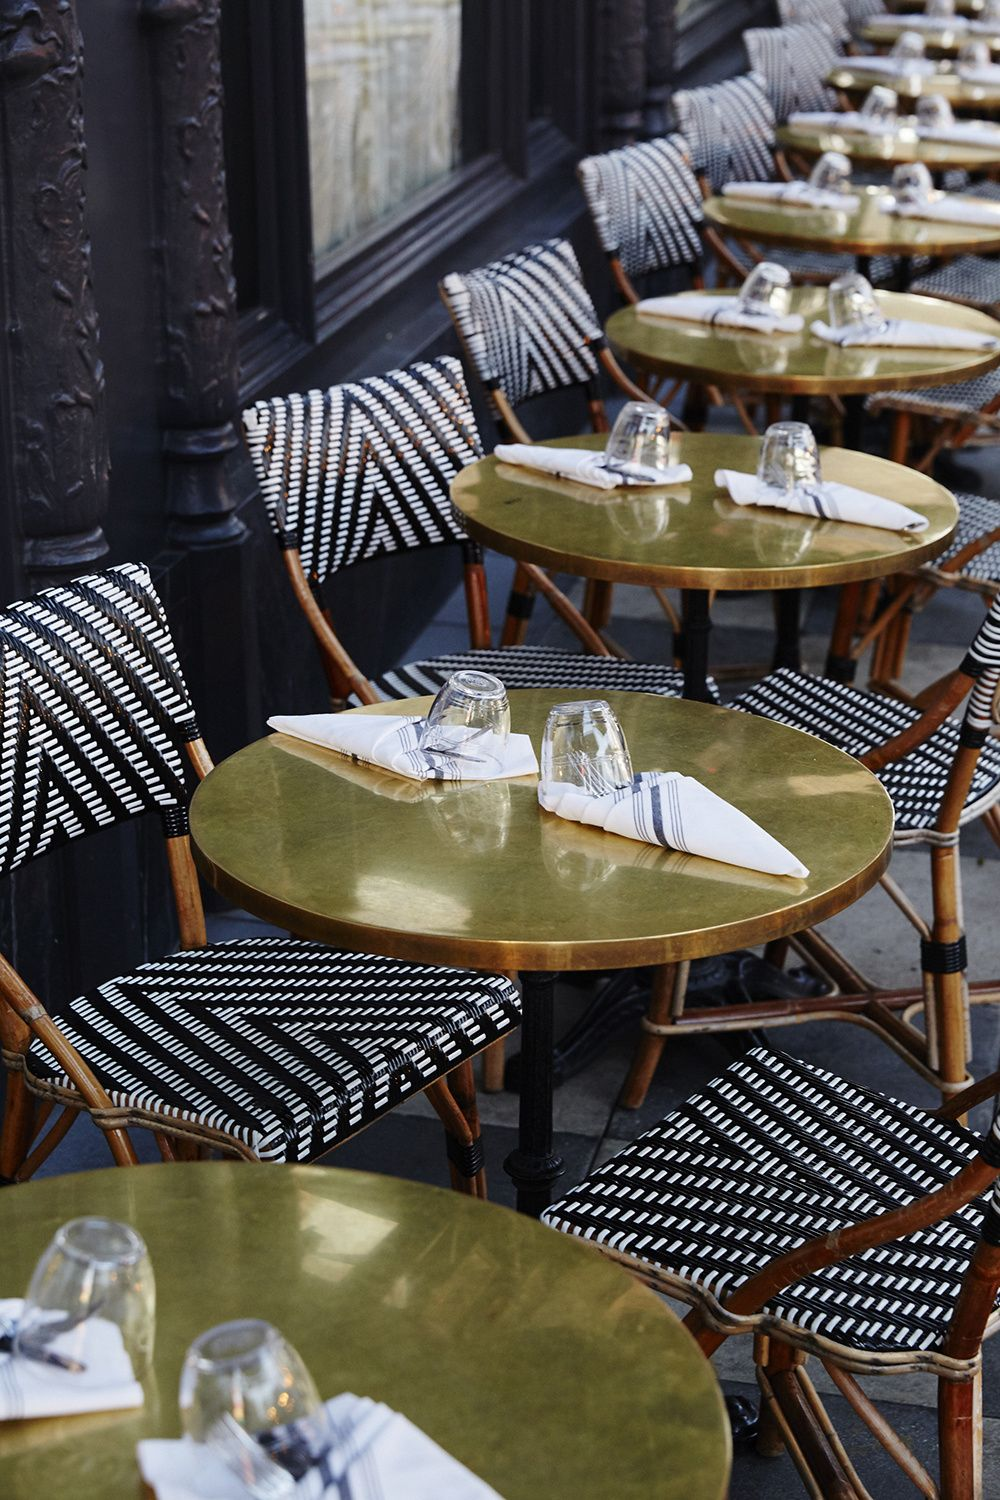 Mobilier Hotel Restaurant Pin By Sally Mcbean On Cafe In 2018 Restaurant Mobilier De